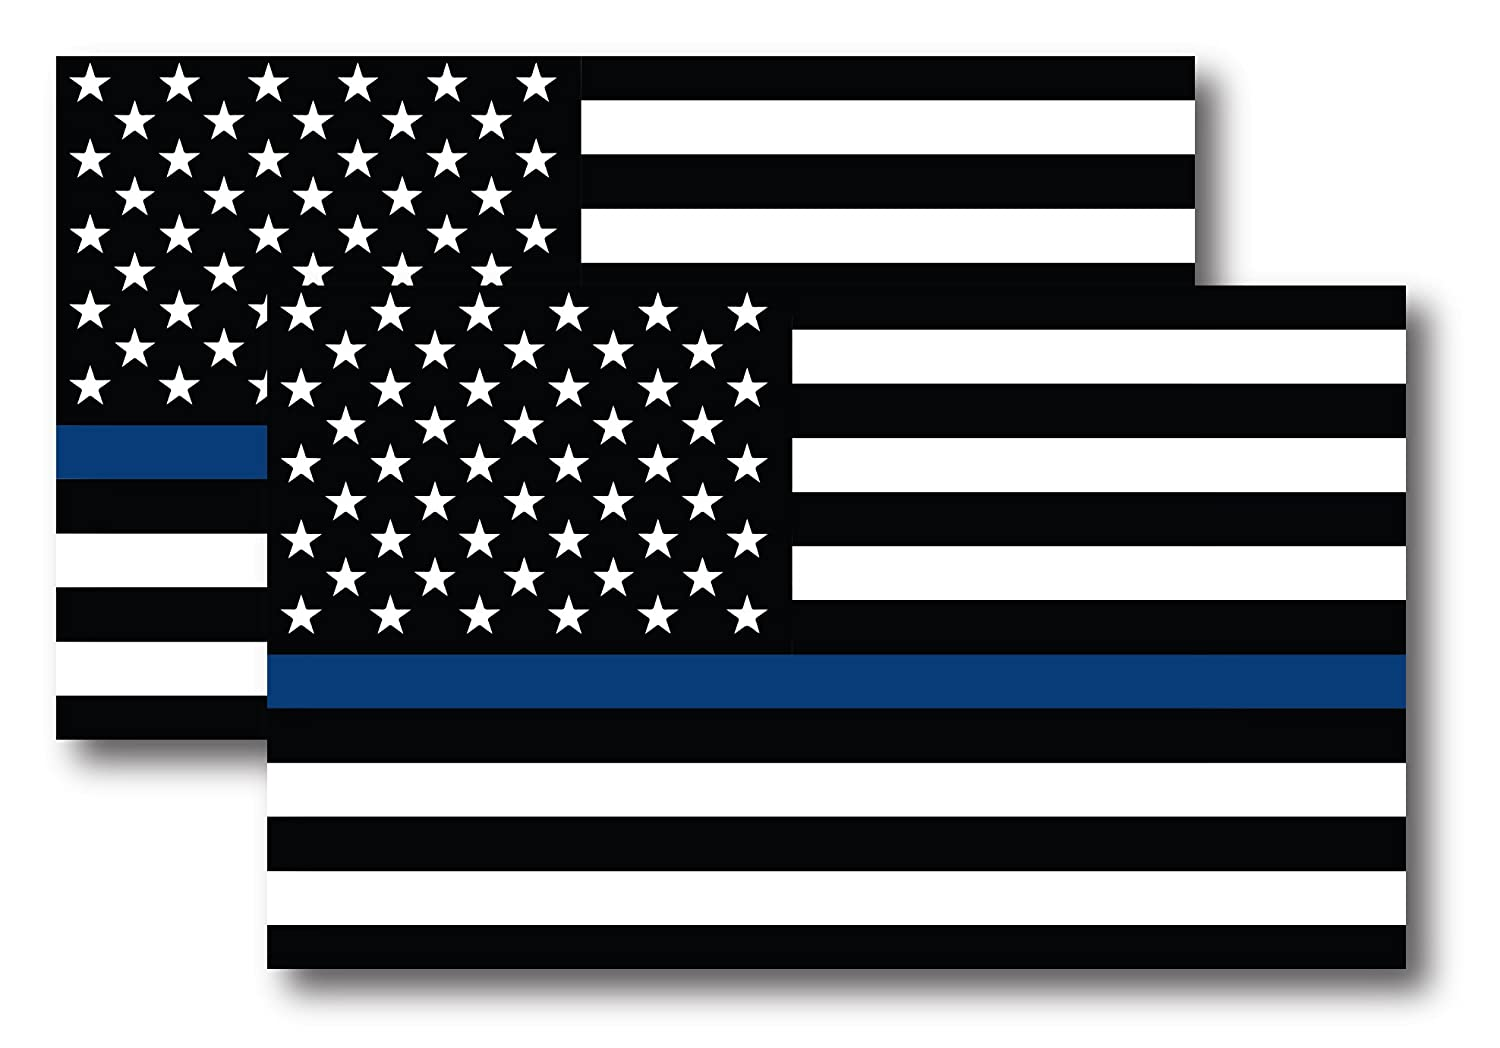 Thin Blue Line American Flag Magnet Decal 5 inch x 3 Inch 2 Pack - Heavy Duty for Car Truck SUV - in Support of Police and Law Enforcement Officers